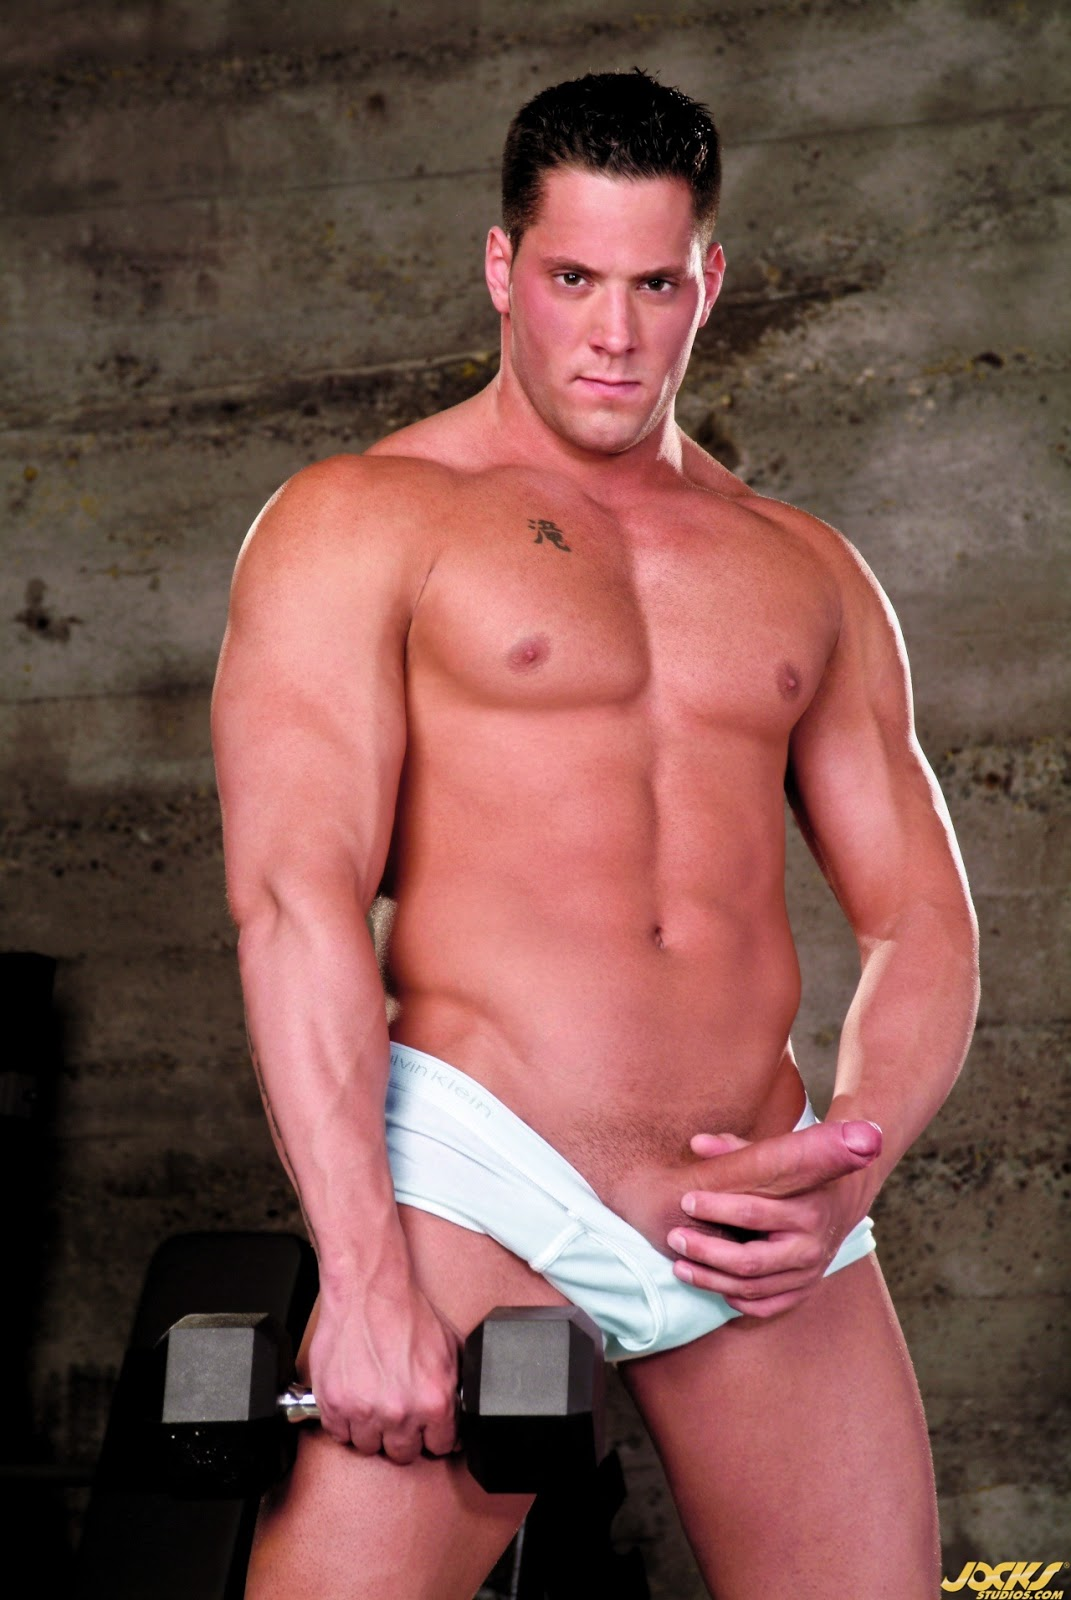 from Otis gay muscleman packages